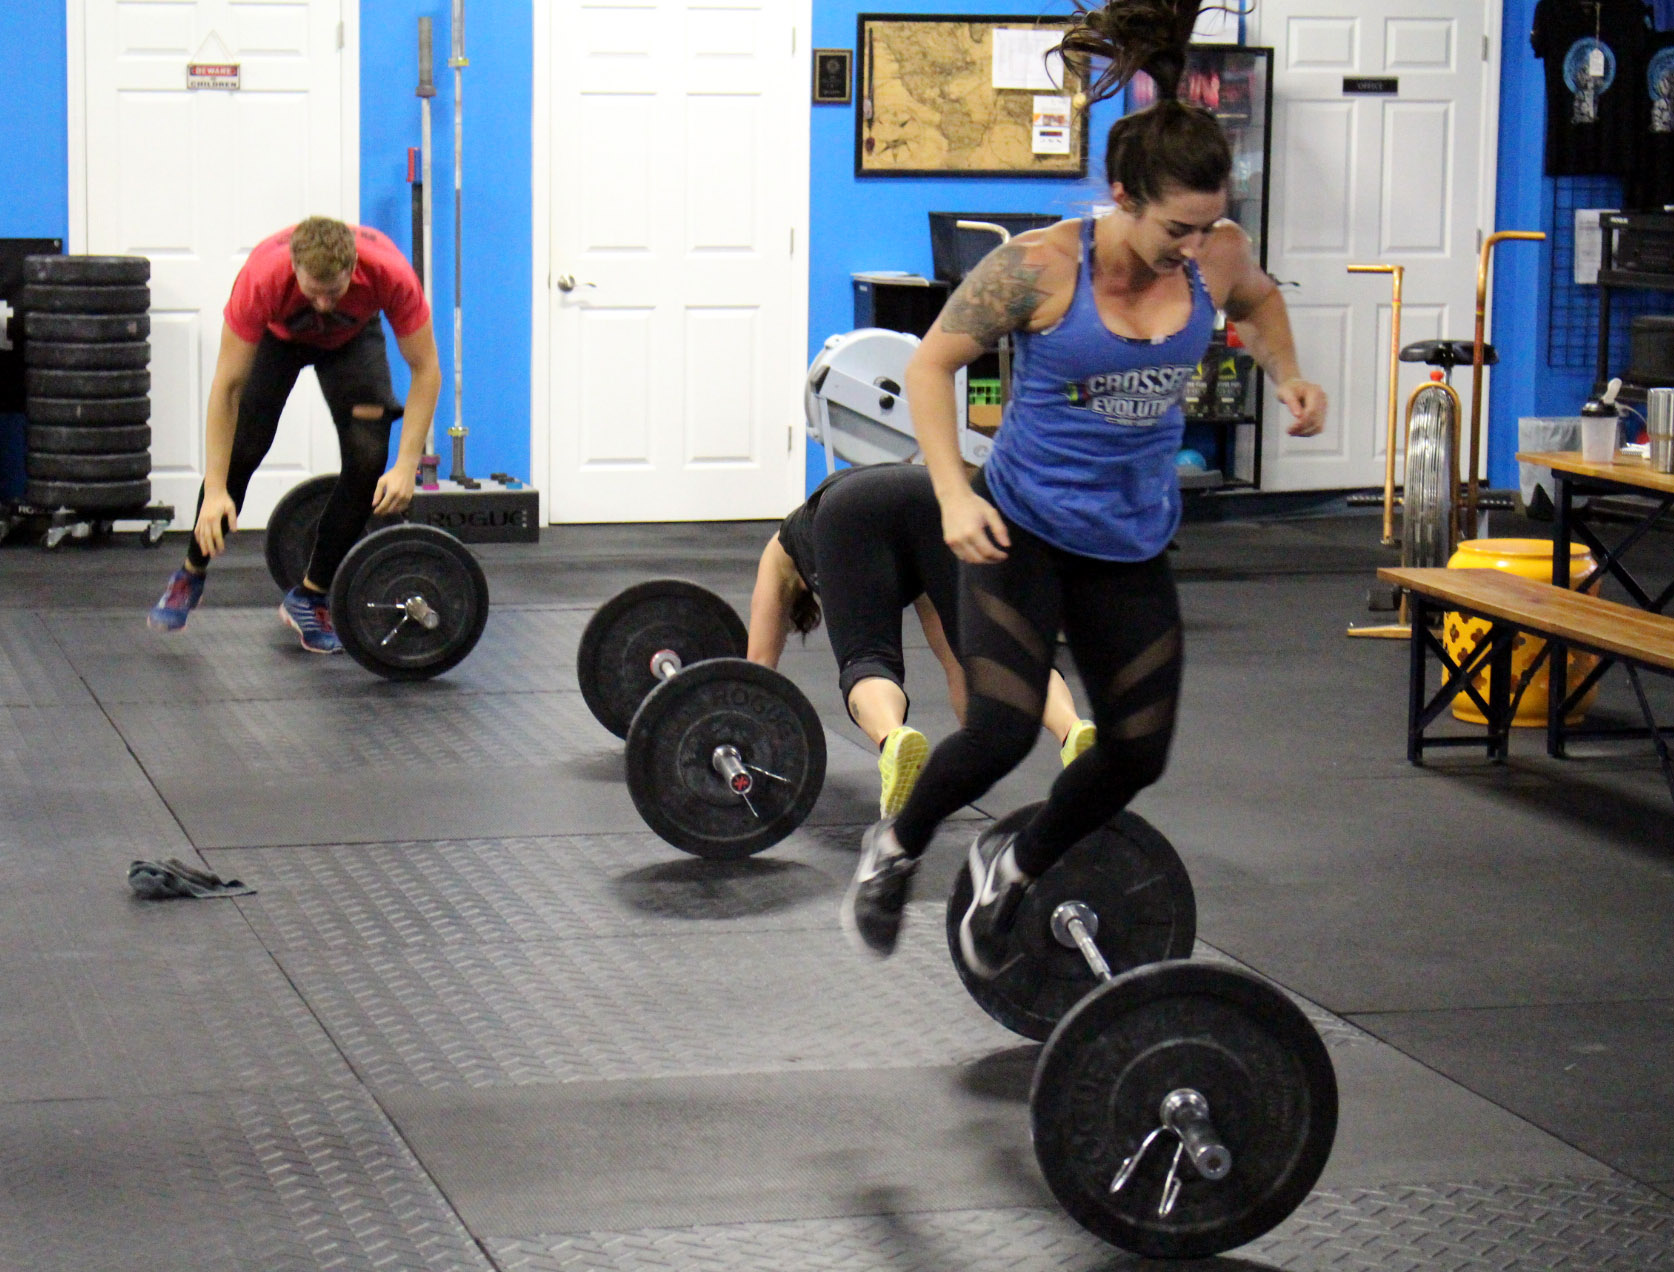 Over the bar burpees